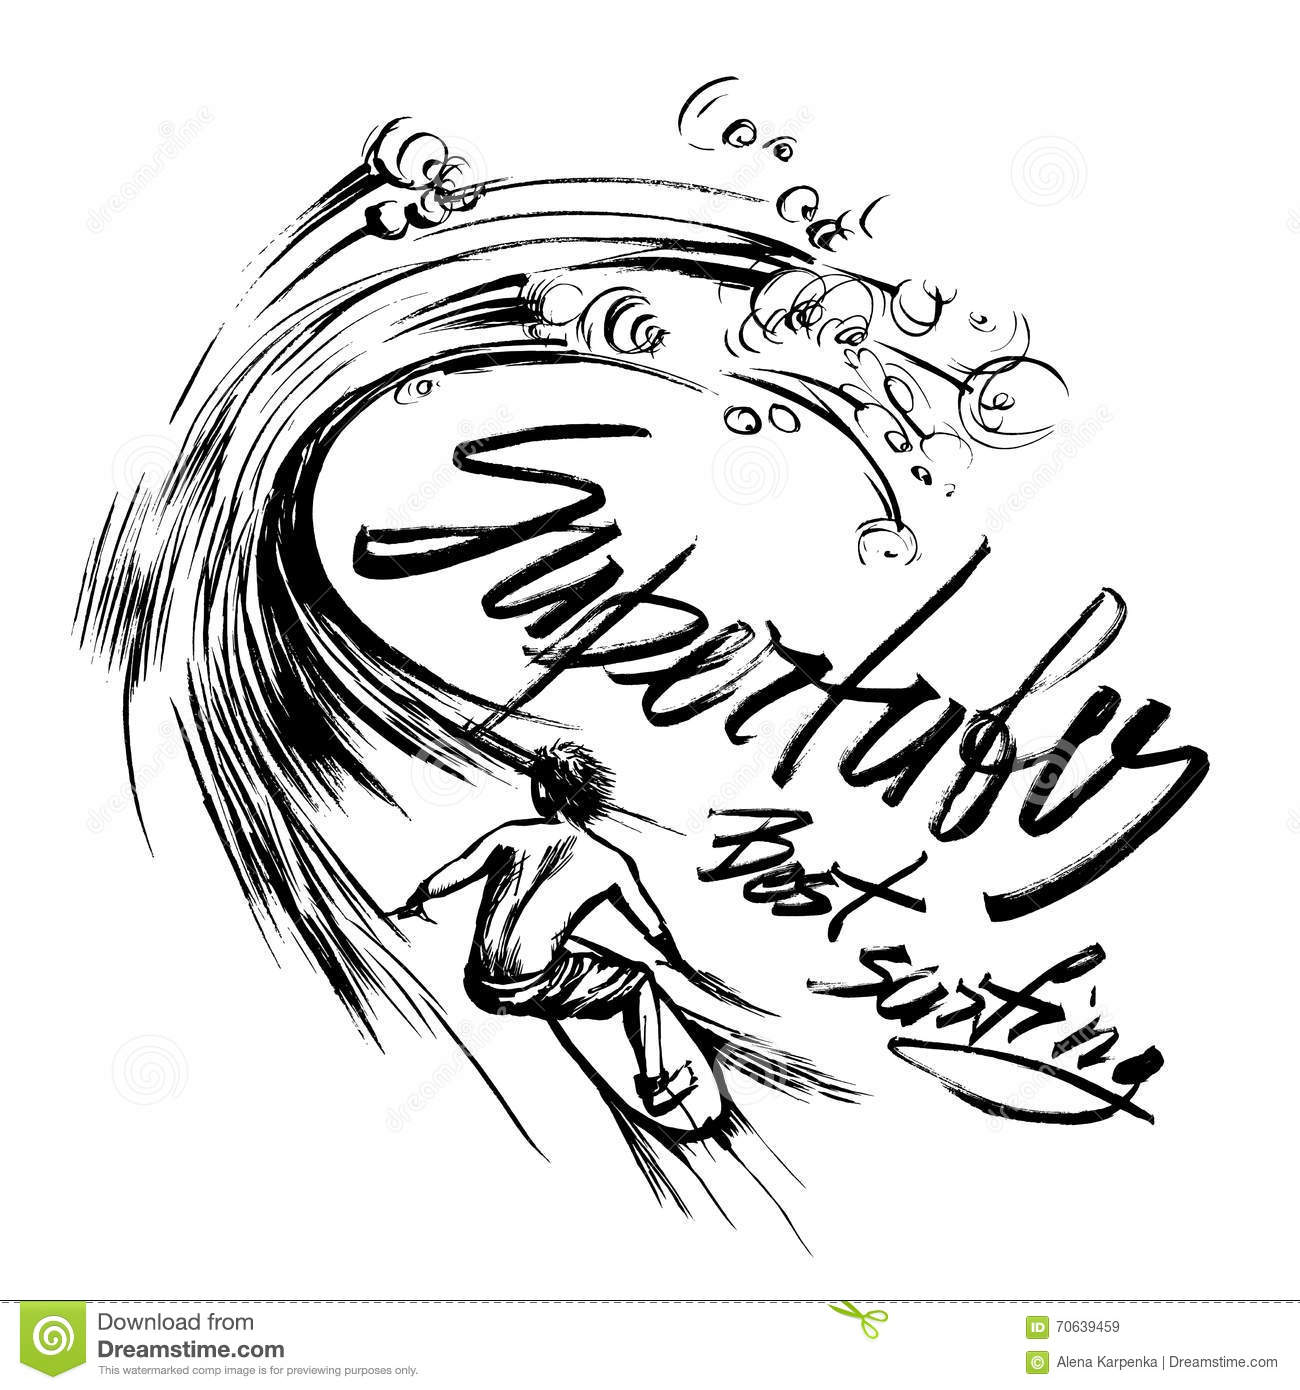 Handdrawn Brush Lettering Cartoon Vector